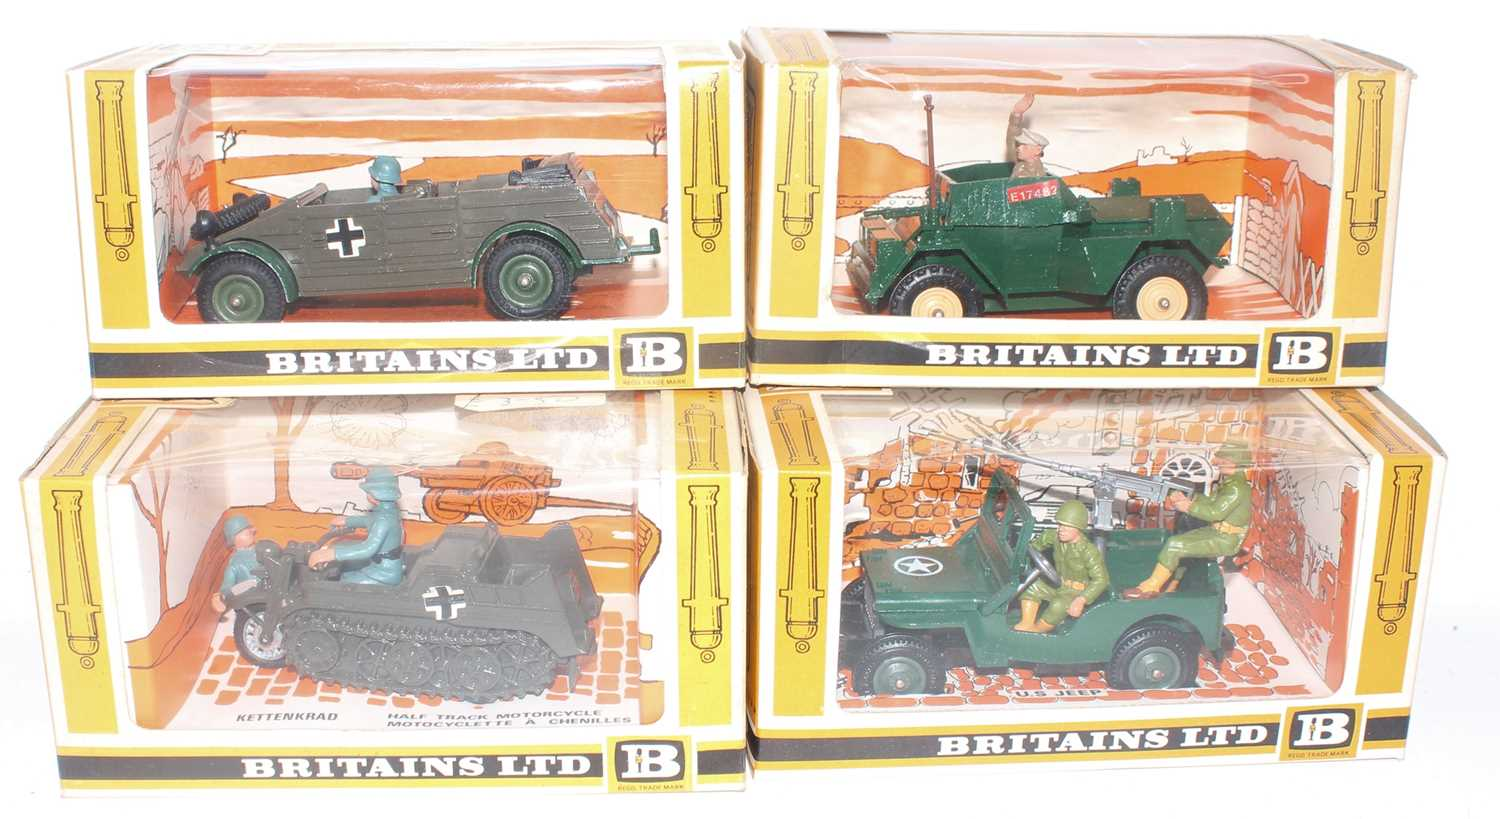 Britains Military Vehicles Boxed Group, 4 examples, all ex-shop stock, to include 9780 Kettenkrad,